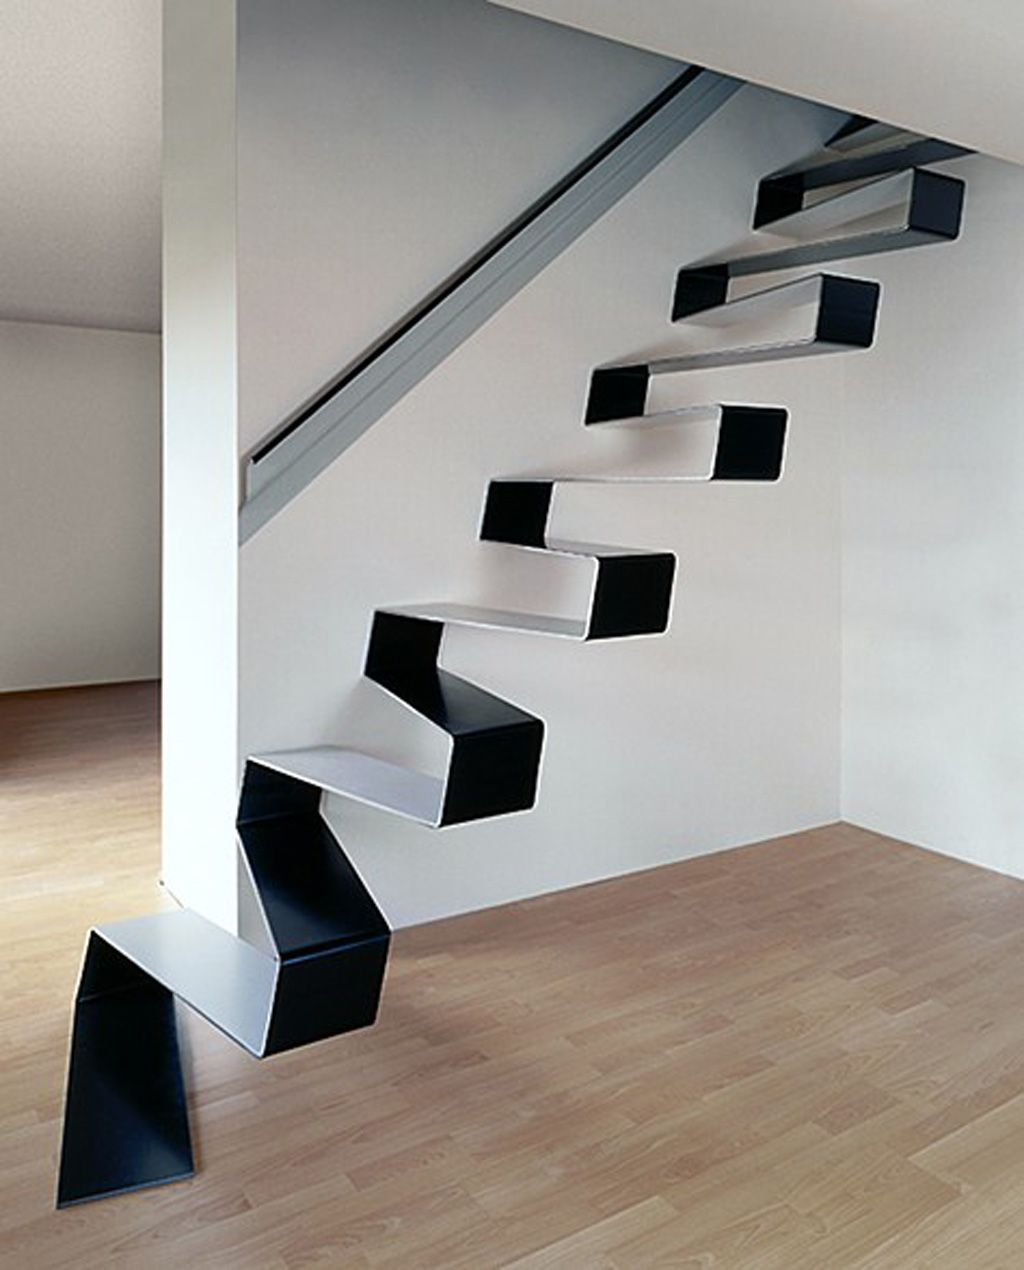 The stairs Here are 26 inspiring ideas